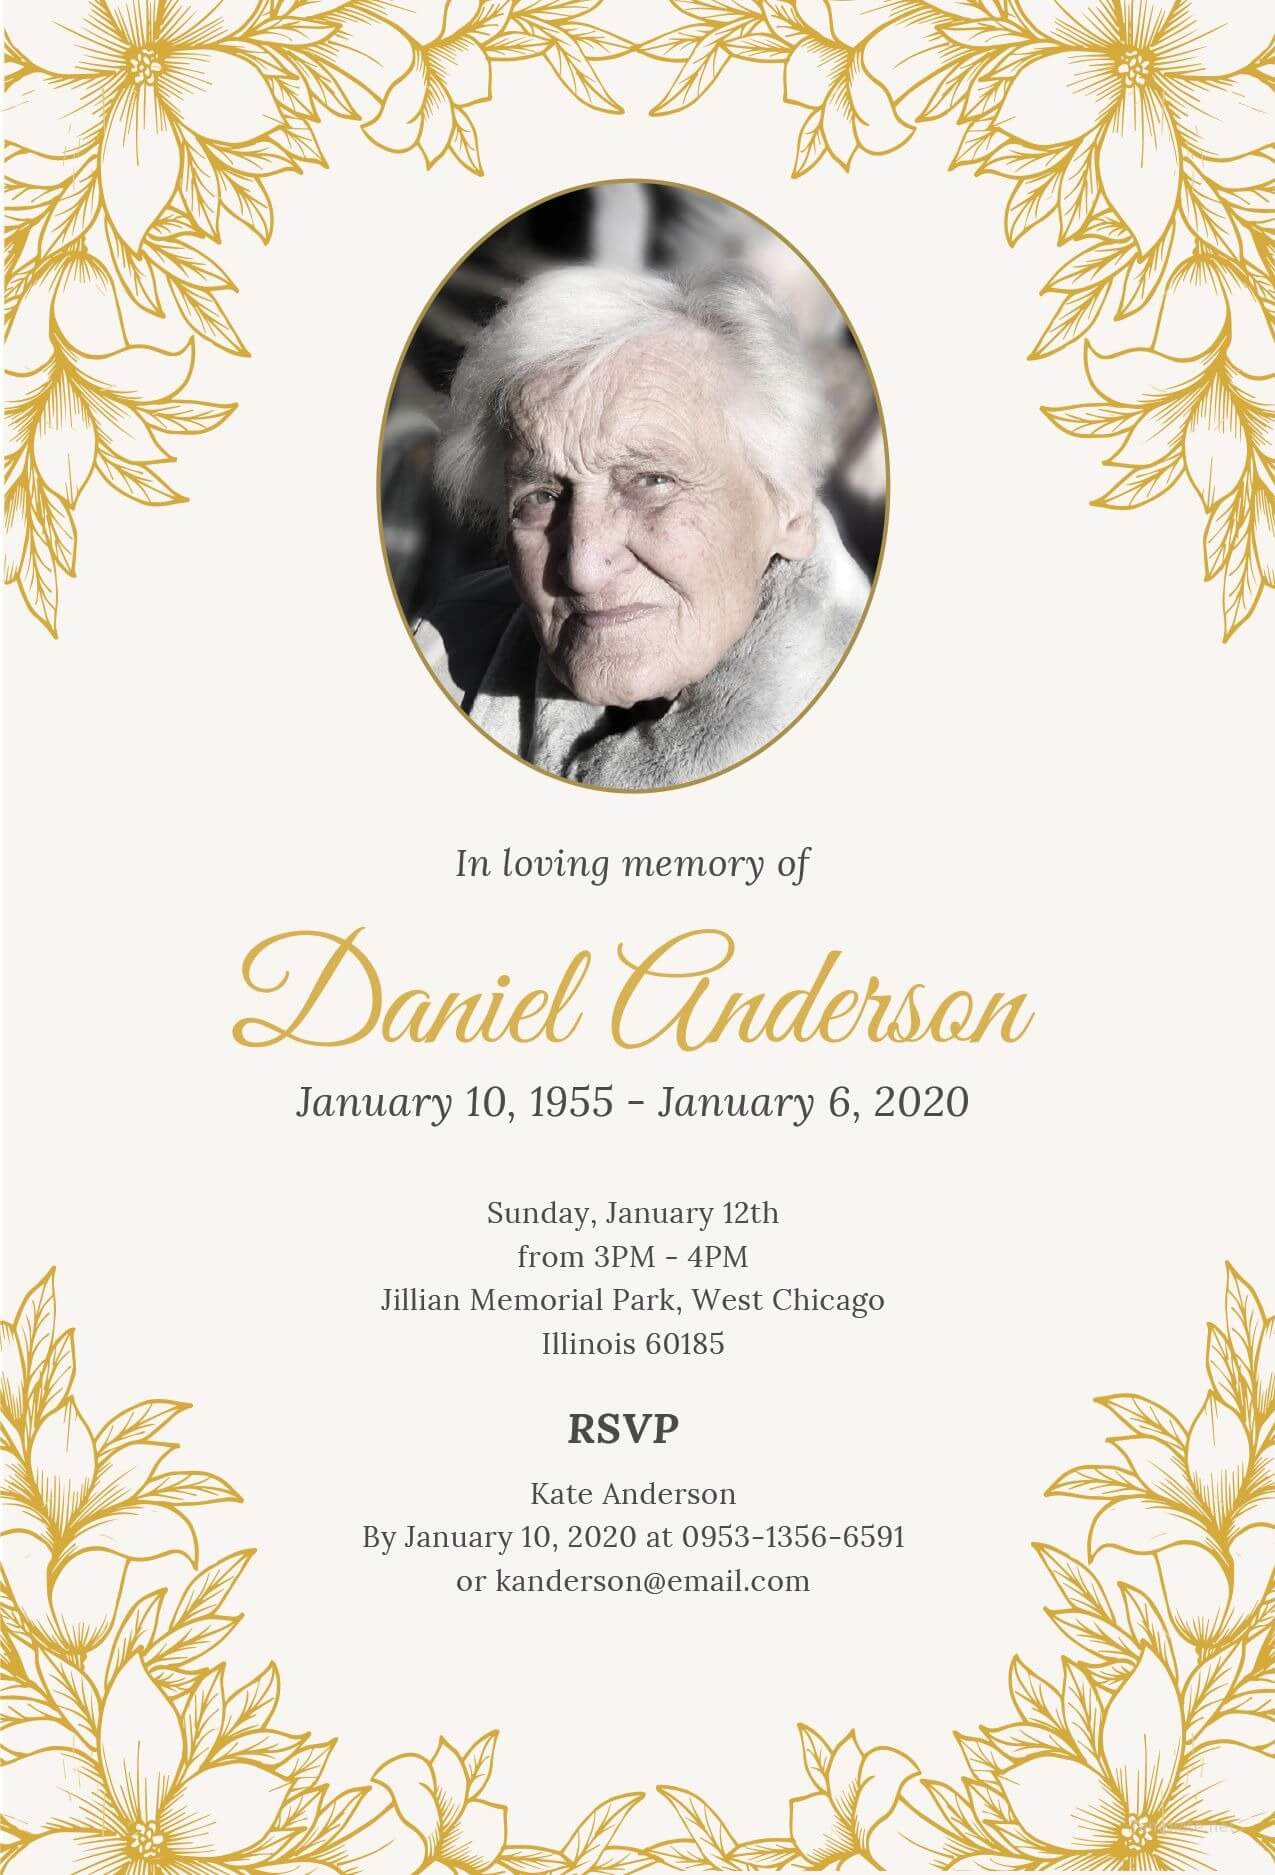 Free Funeral Ceremony Invitation | Funeral Invitation Intended For Funeral Invitation Card Template